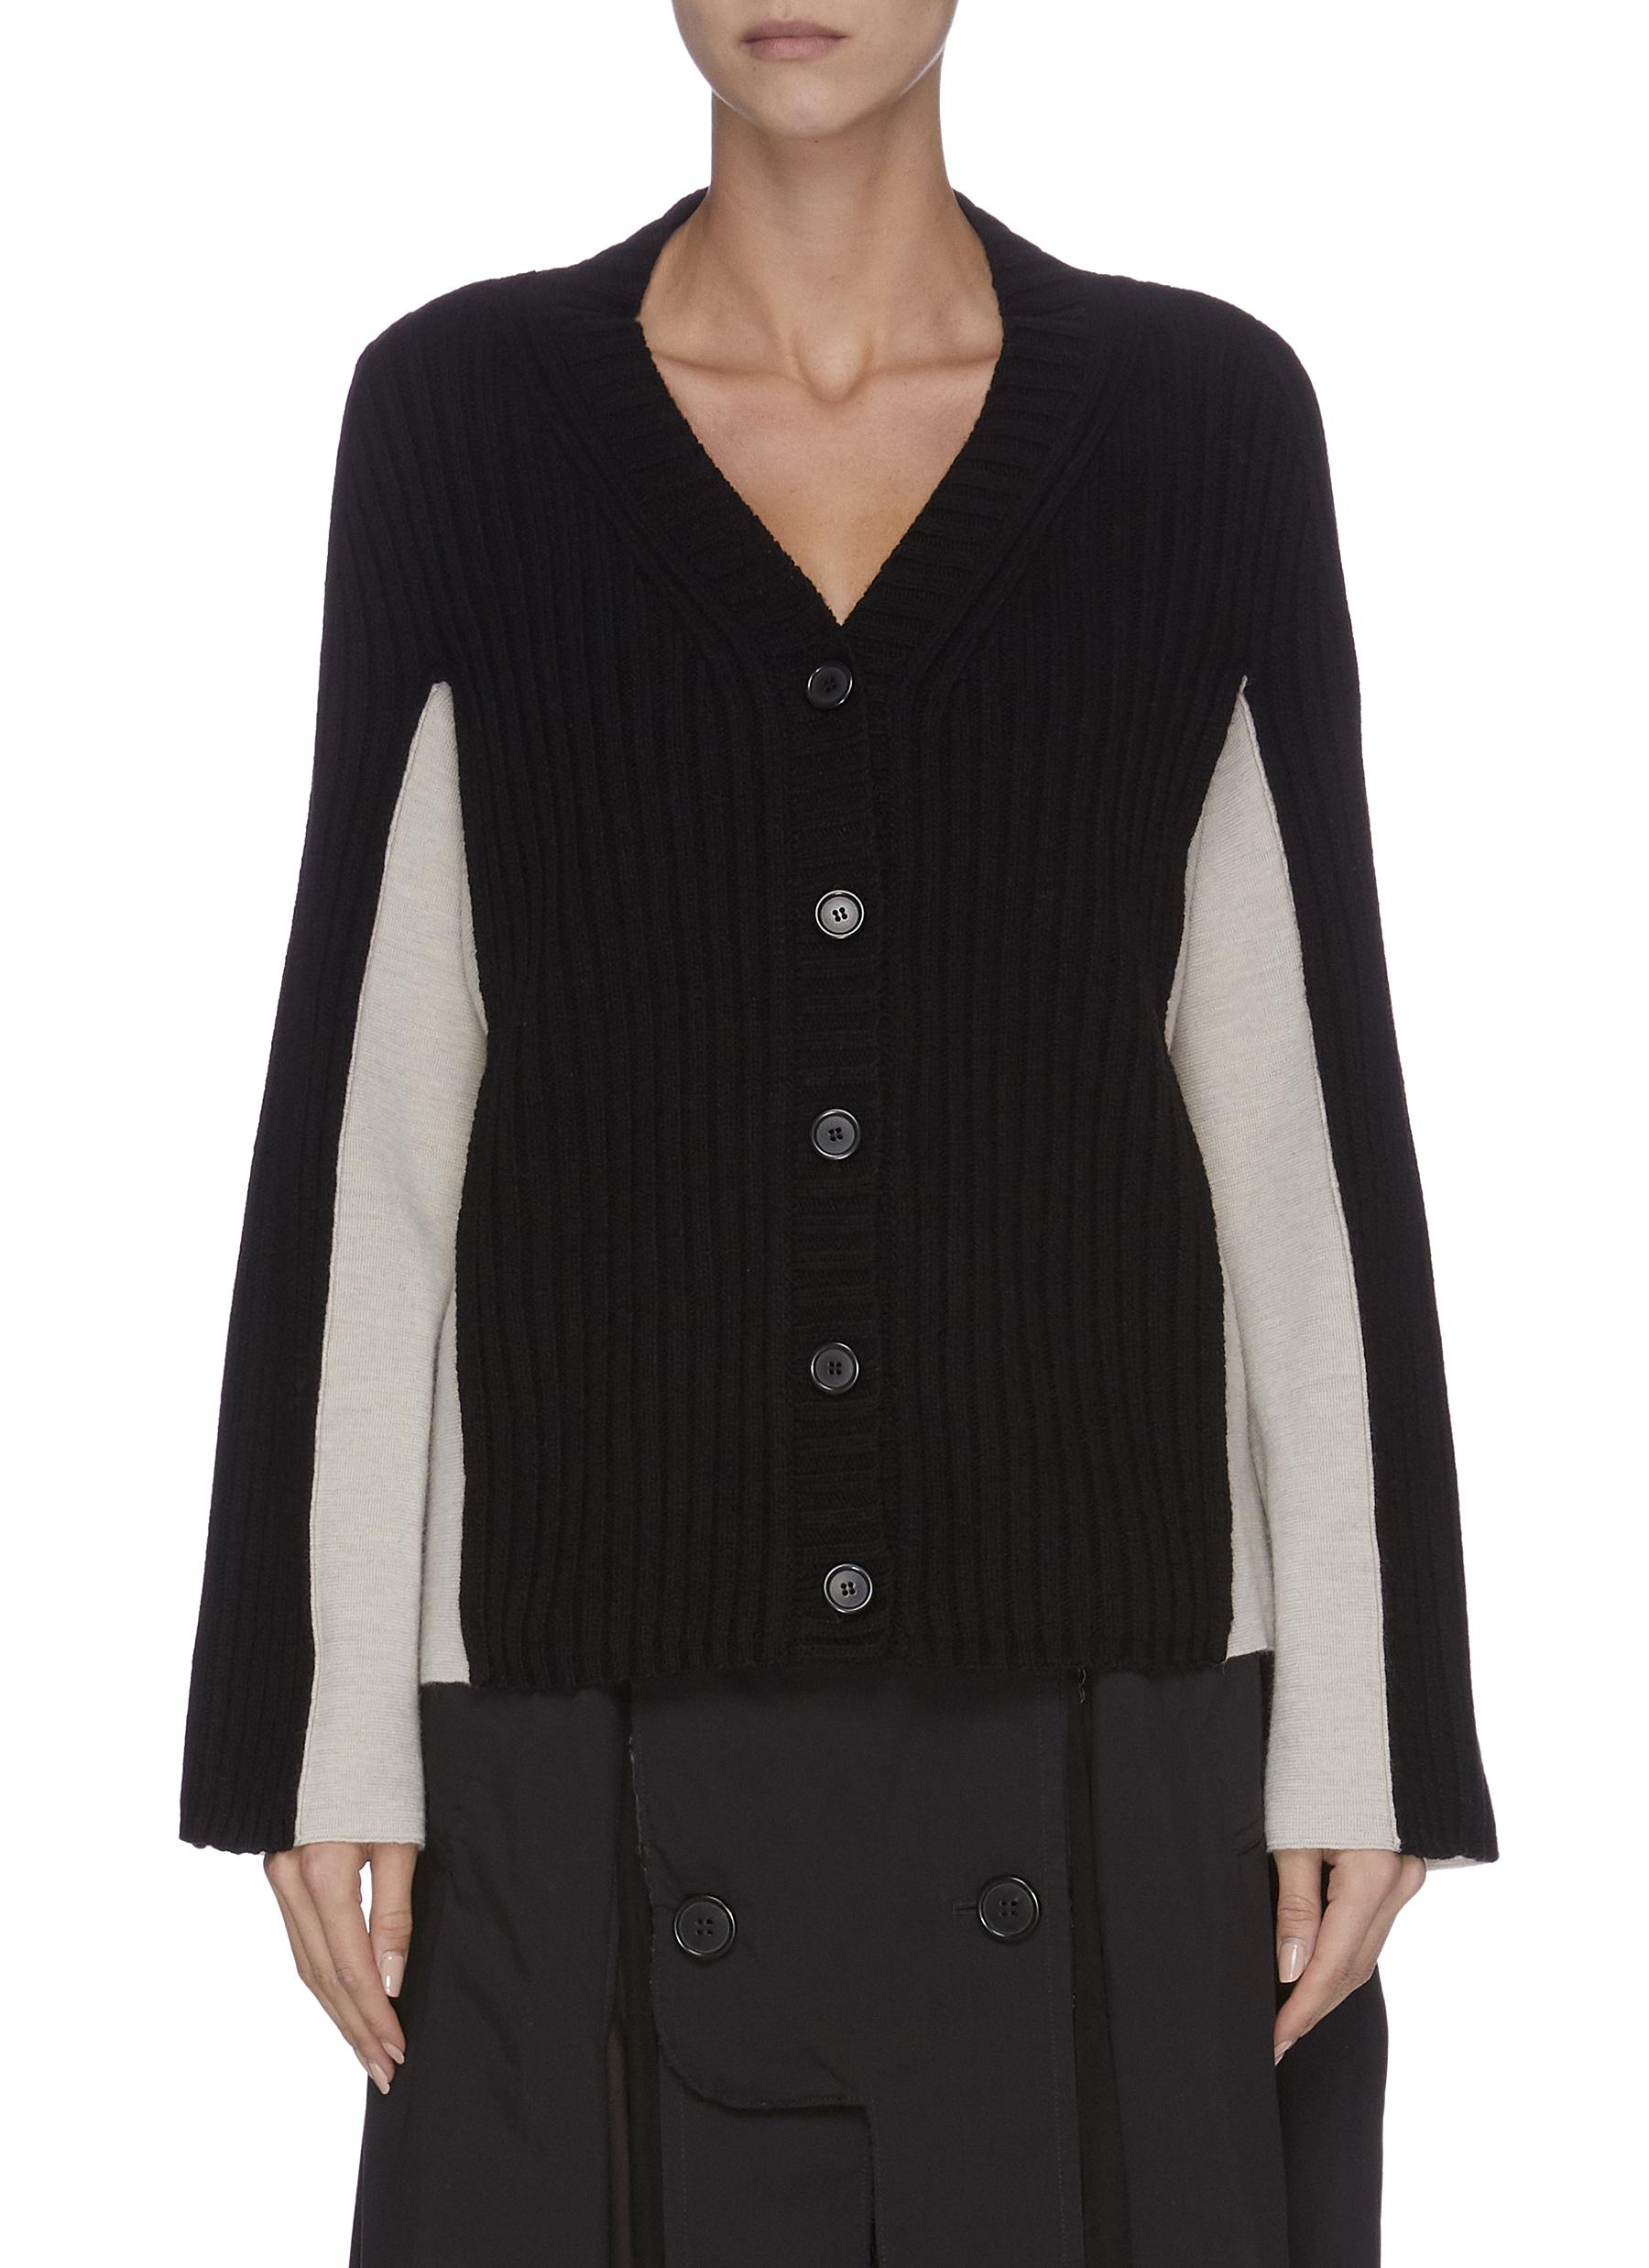 Contrast panel ribbed cardigan by Maison Margiela